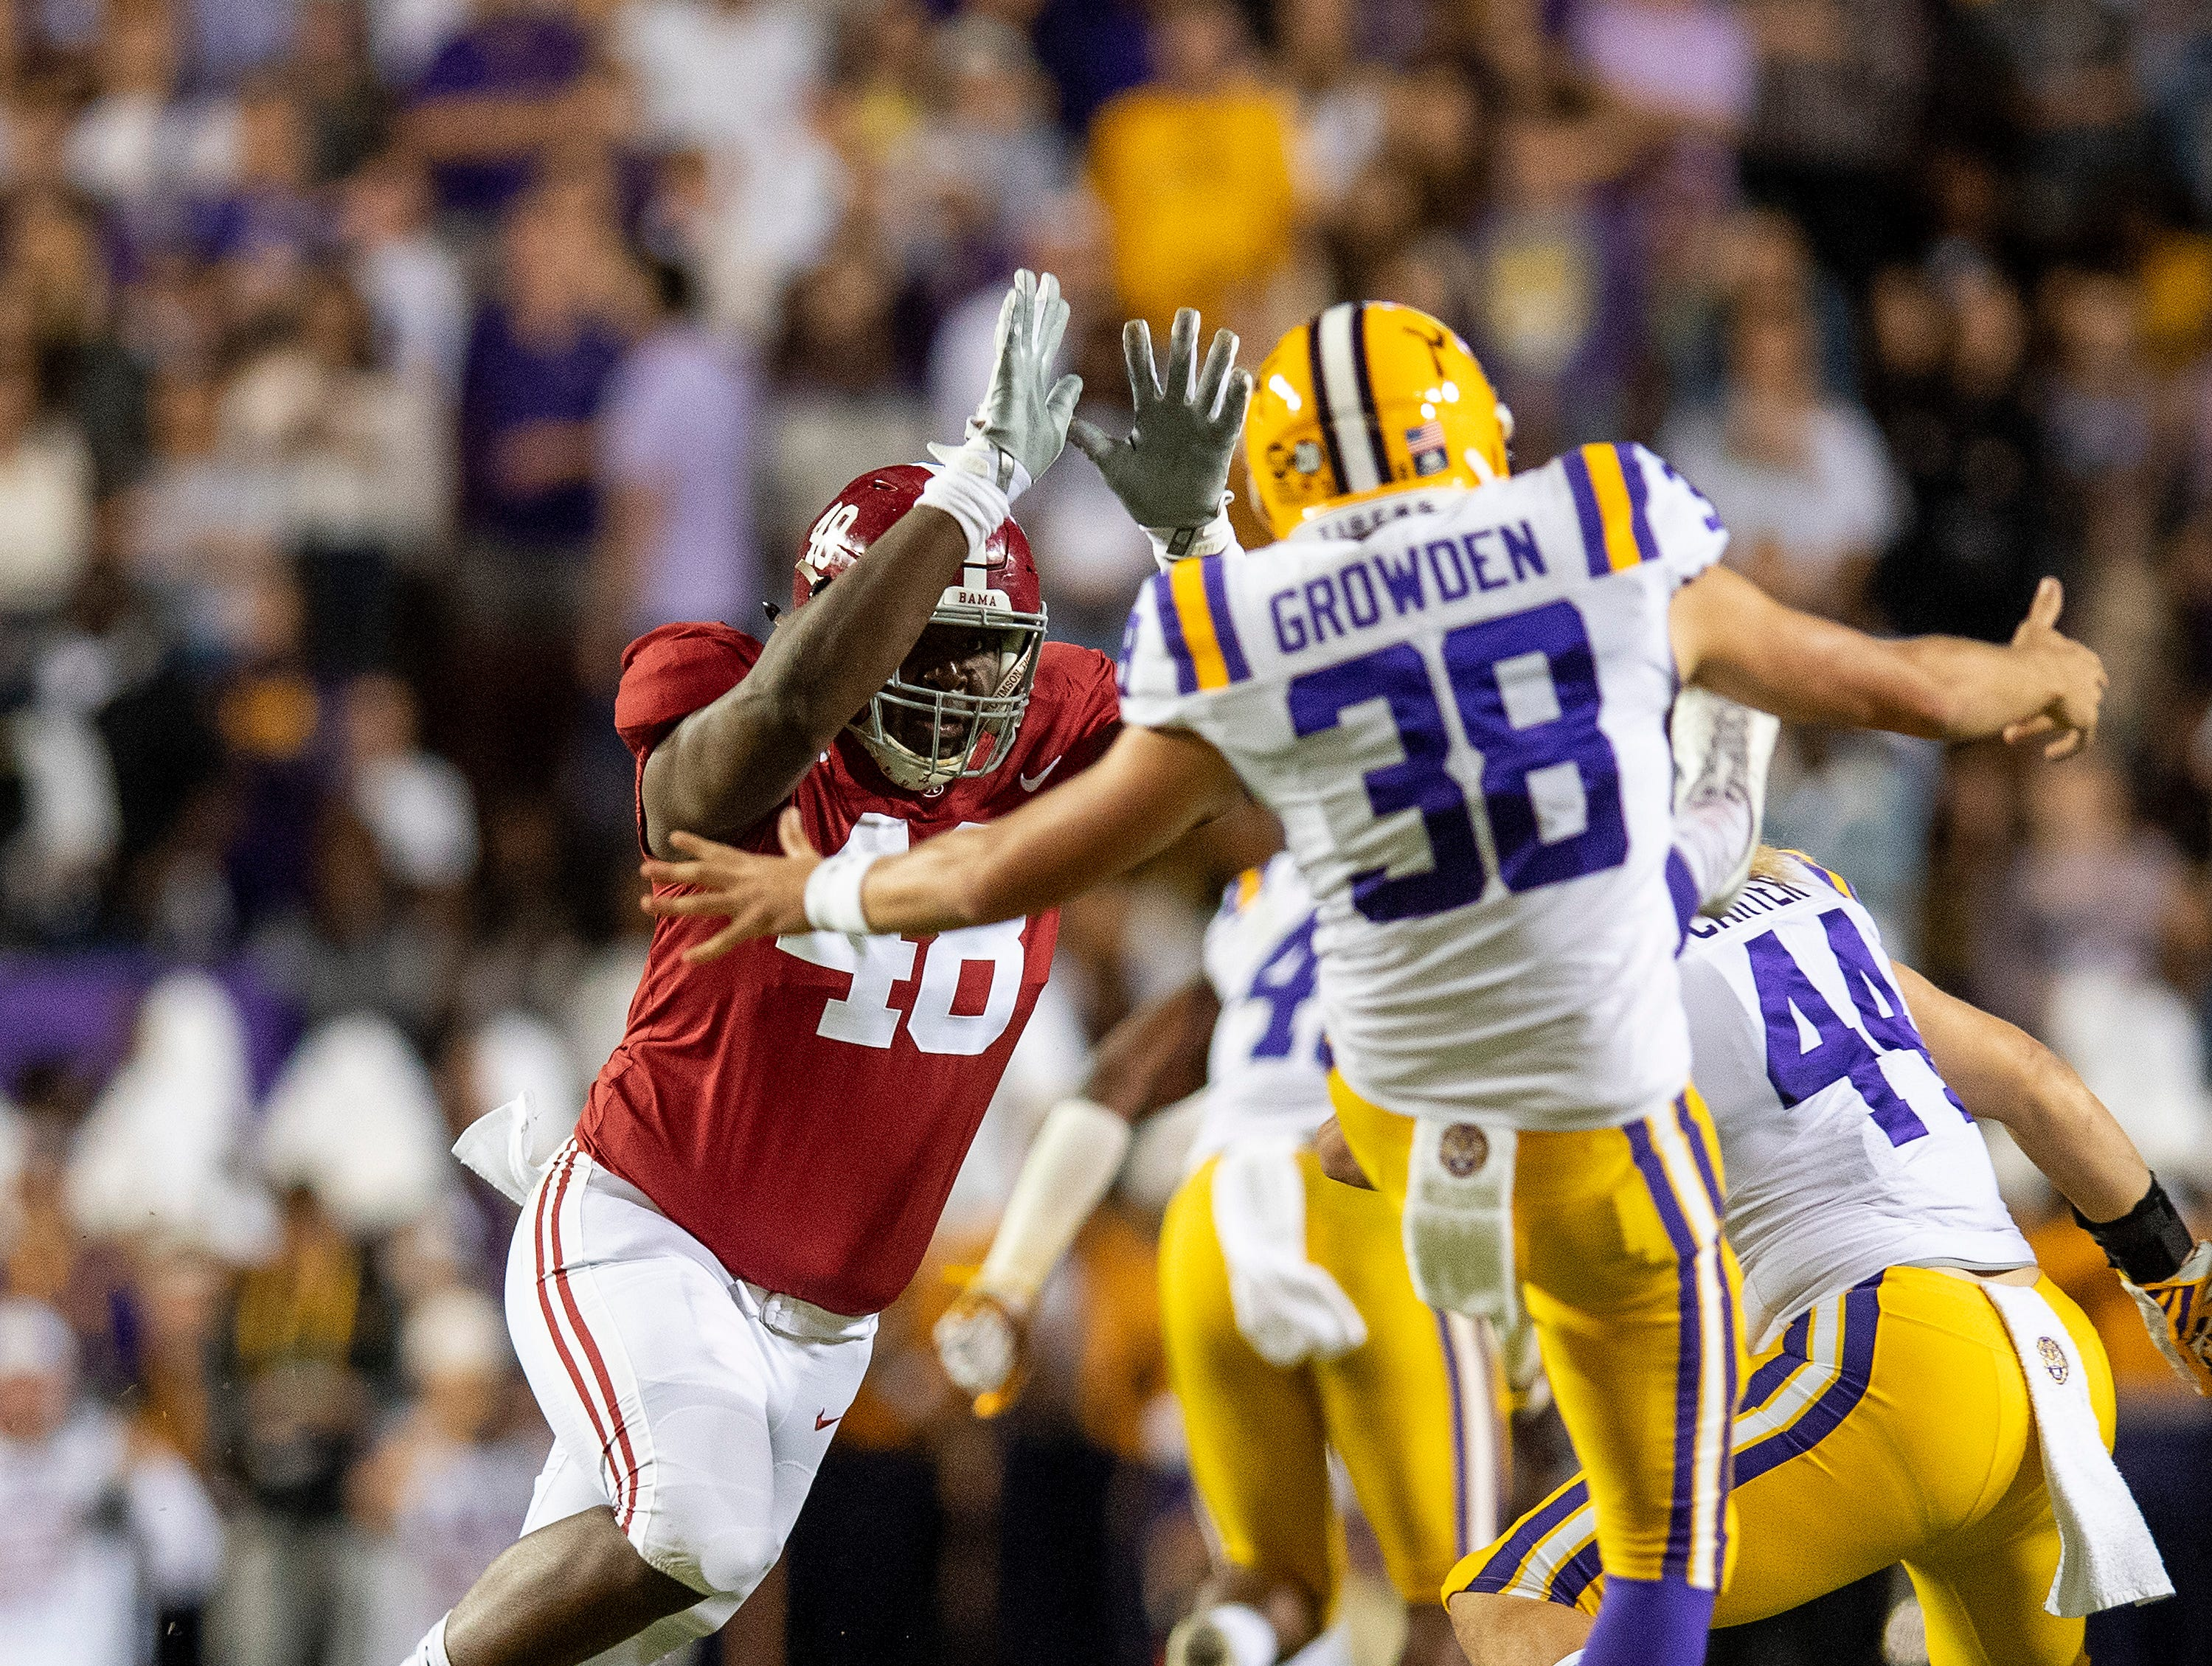 Alabama defensive lineman Phidarian Mathis (48) pressures Louisiana State University punter Josh Growden (38) in first half action at Tiger Stadium in Baton Rouge, La., on Saturday November 3, 2018.